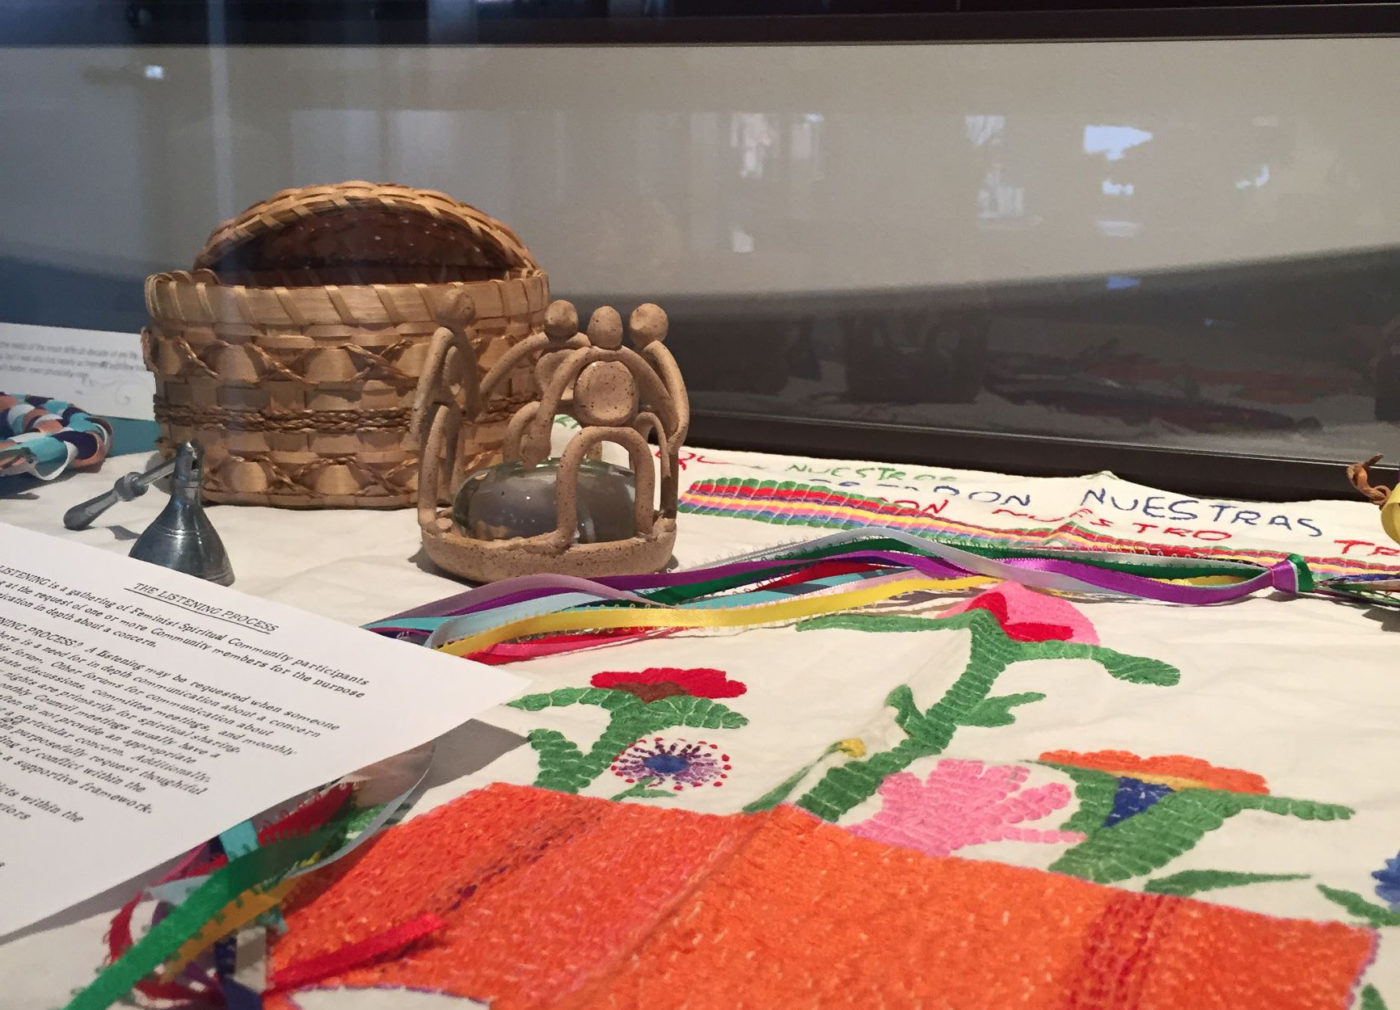 Detail of embroidered flowers growing from tree stump, female figure candle holder, a page, and a basket from exhibit case.